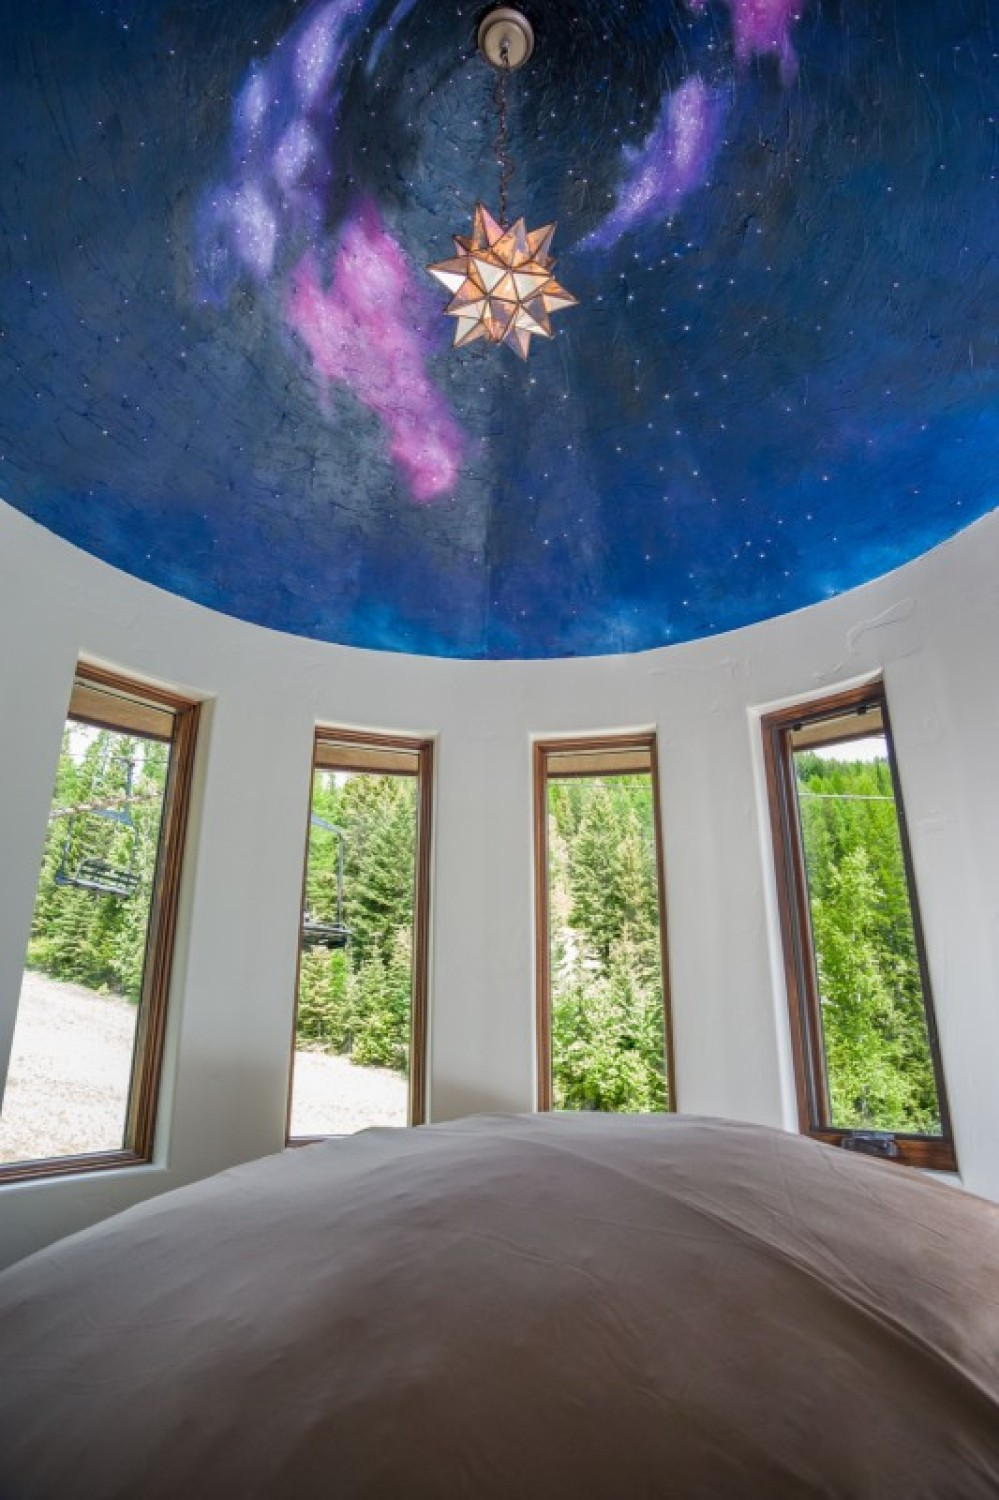 Relax underneath the stars or just watch the chairlift go by in the turret – Trevon Baker